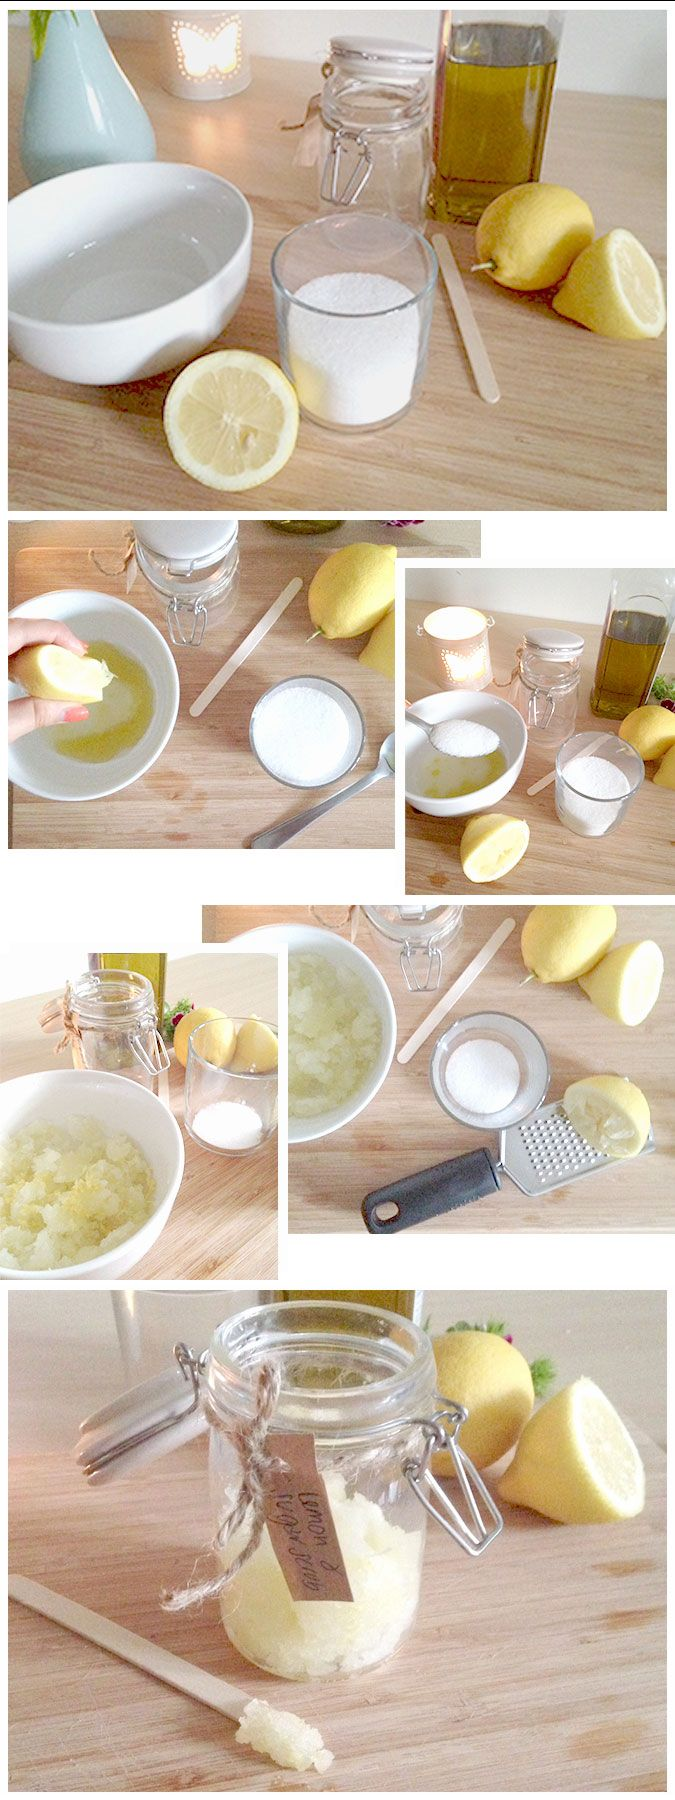 LEMON AND SUGAR ORGANIC FOOT SCRUB RECIPE. #MadeWithThought #OrganicBeauty